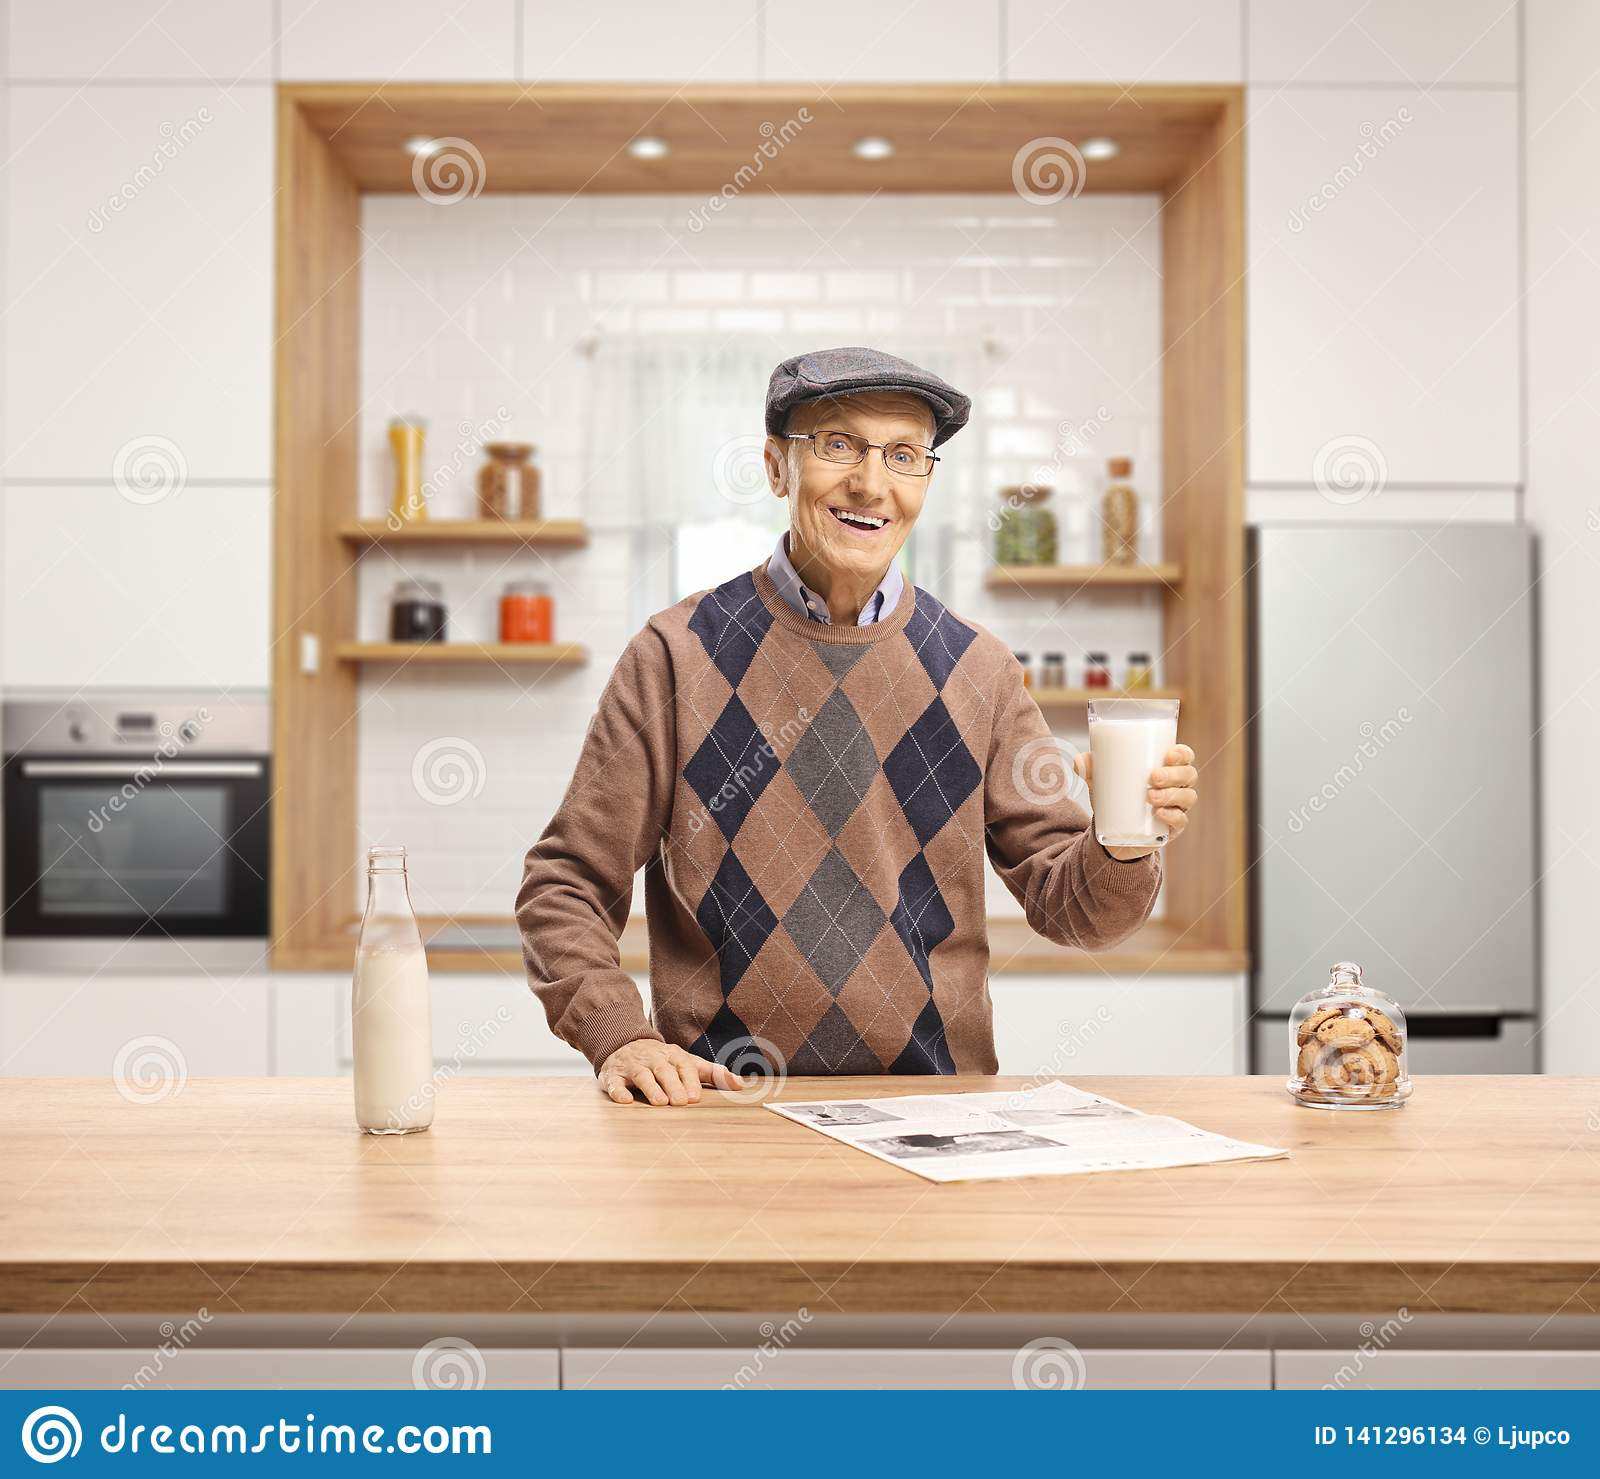 Elderly man holding a glass of milk and standing behind a wooden counter in a kitchen